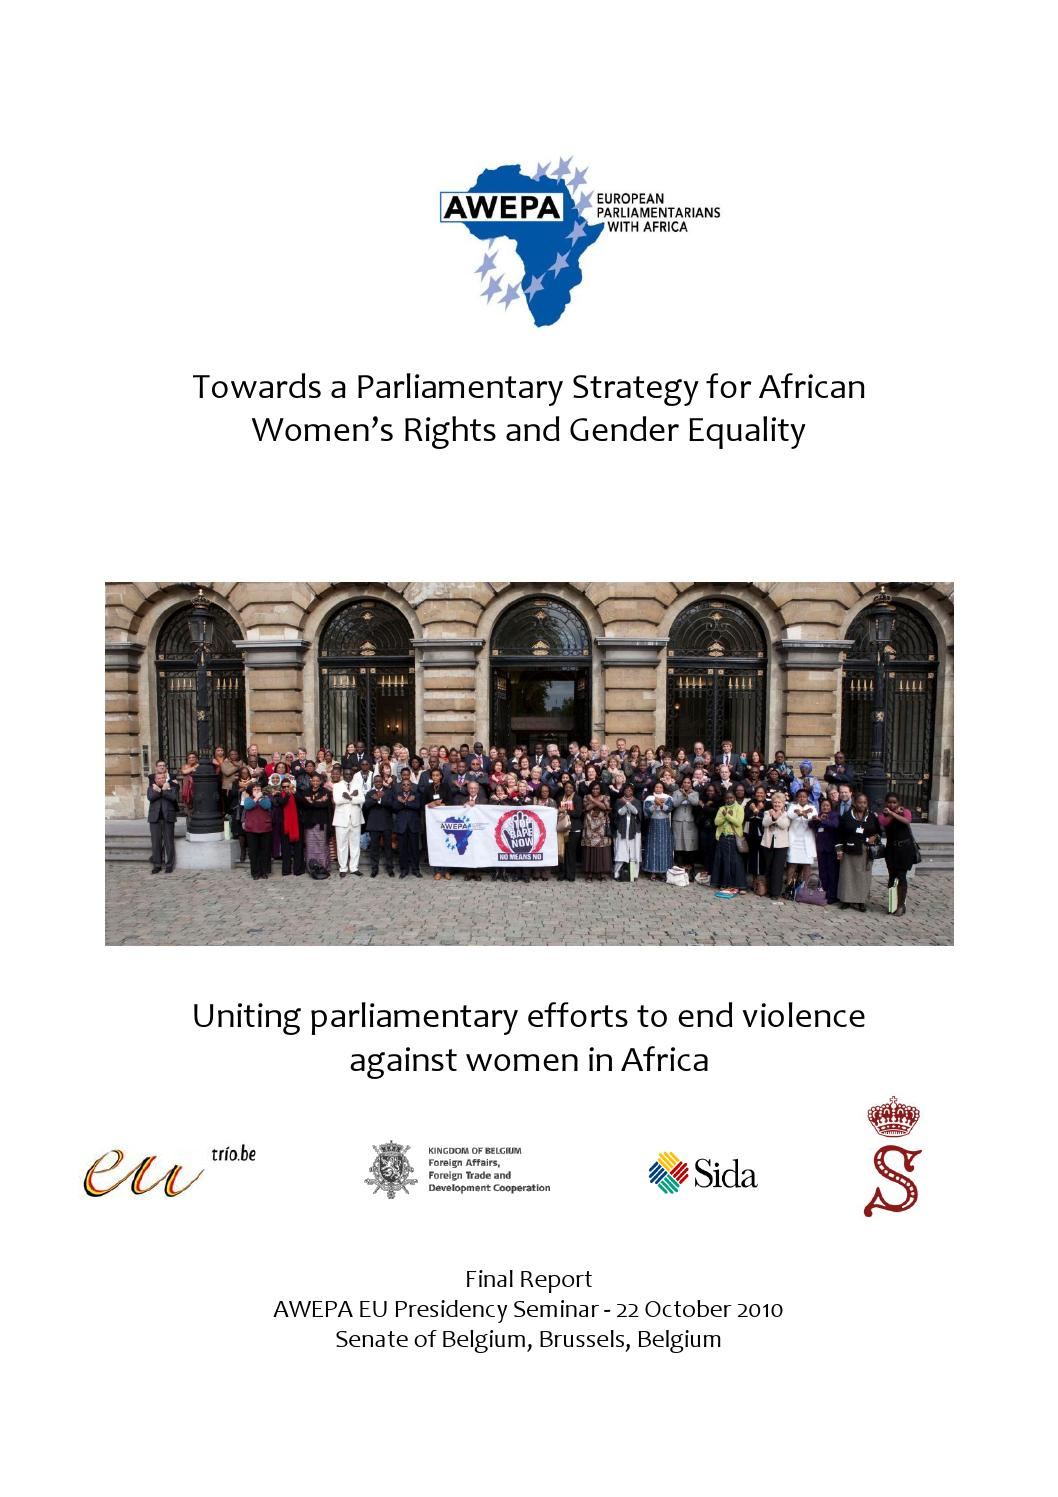 action research proposal template%0A Towards a Parliamentary Strategy for African Women u    s Rights and Gender  Equal  by AWEPA  issuu